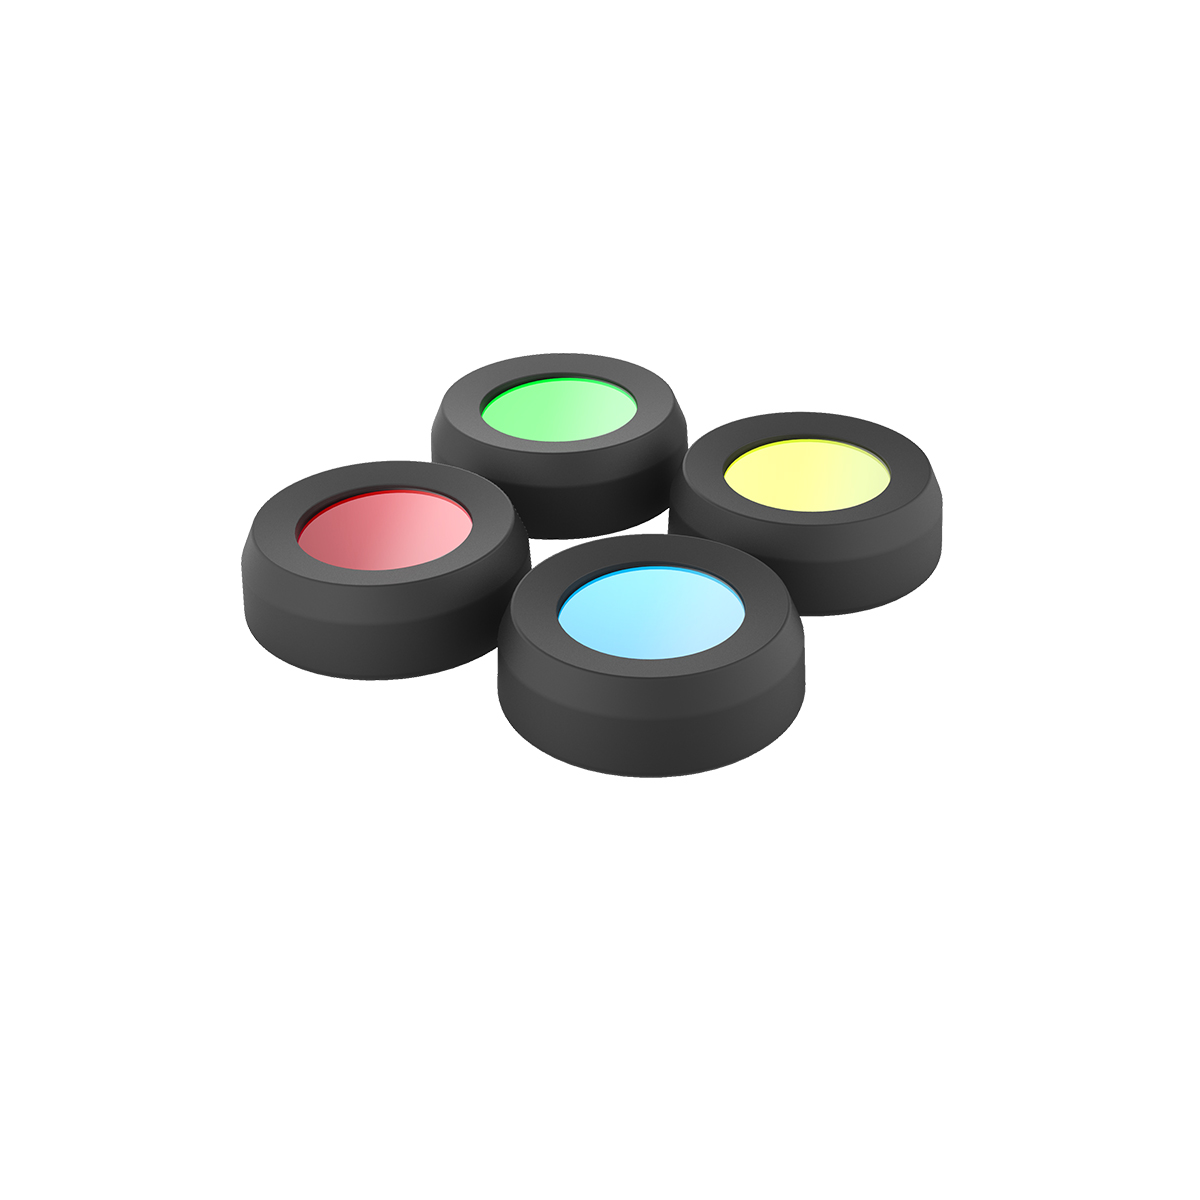 Colour Filter Set 36mm fits MH10,H8R